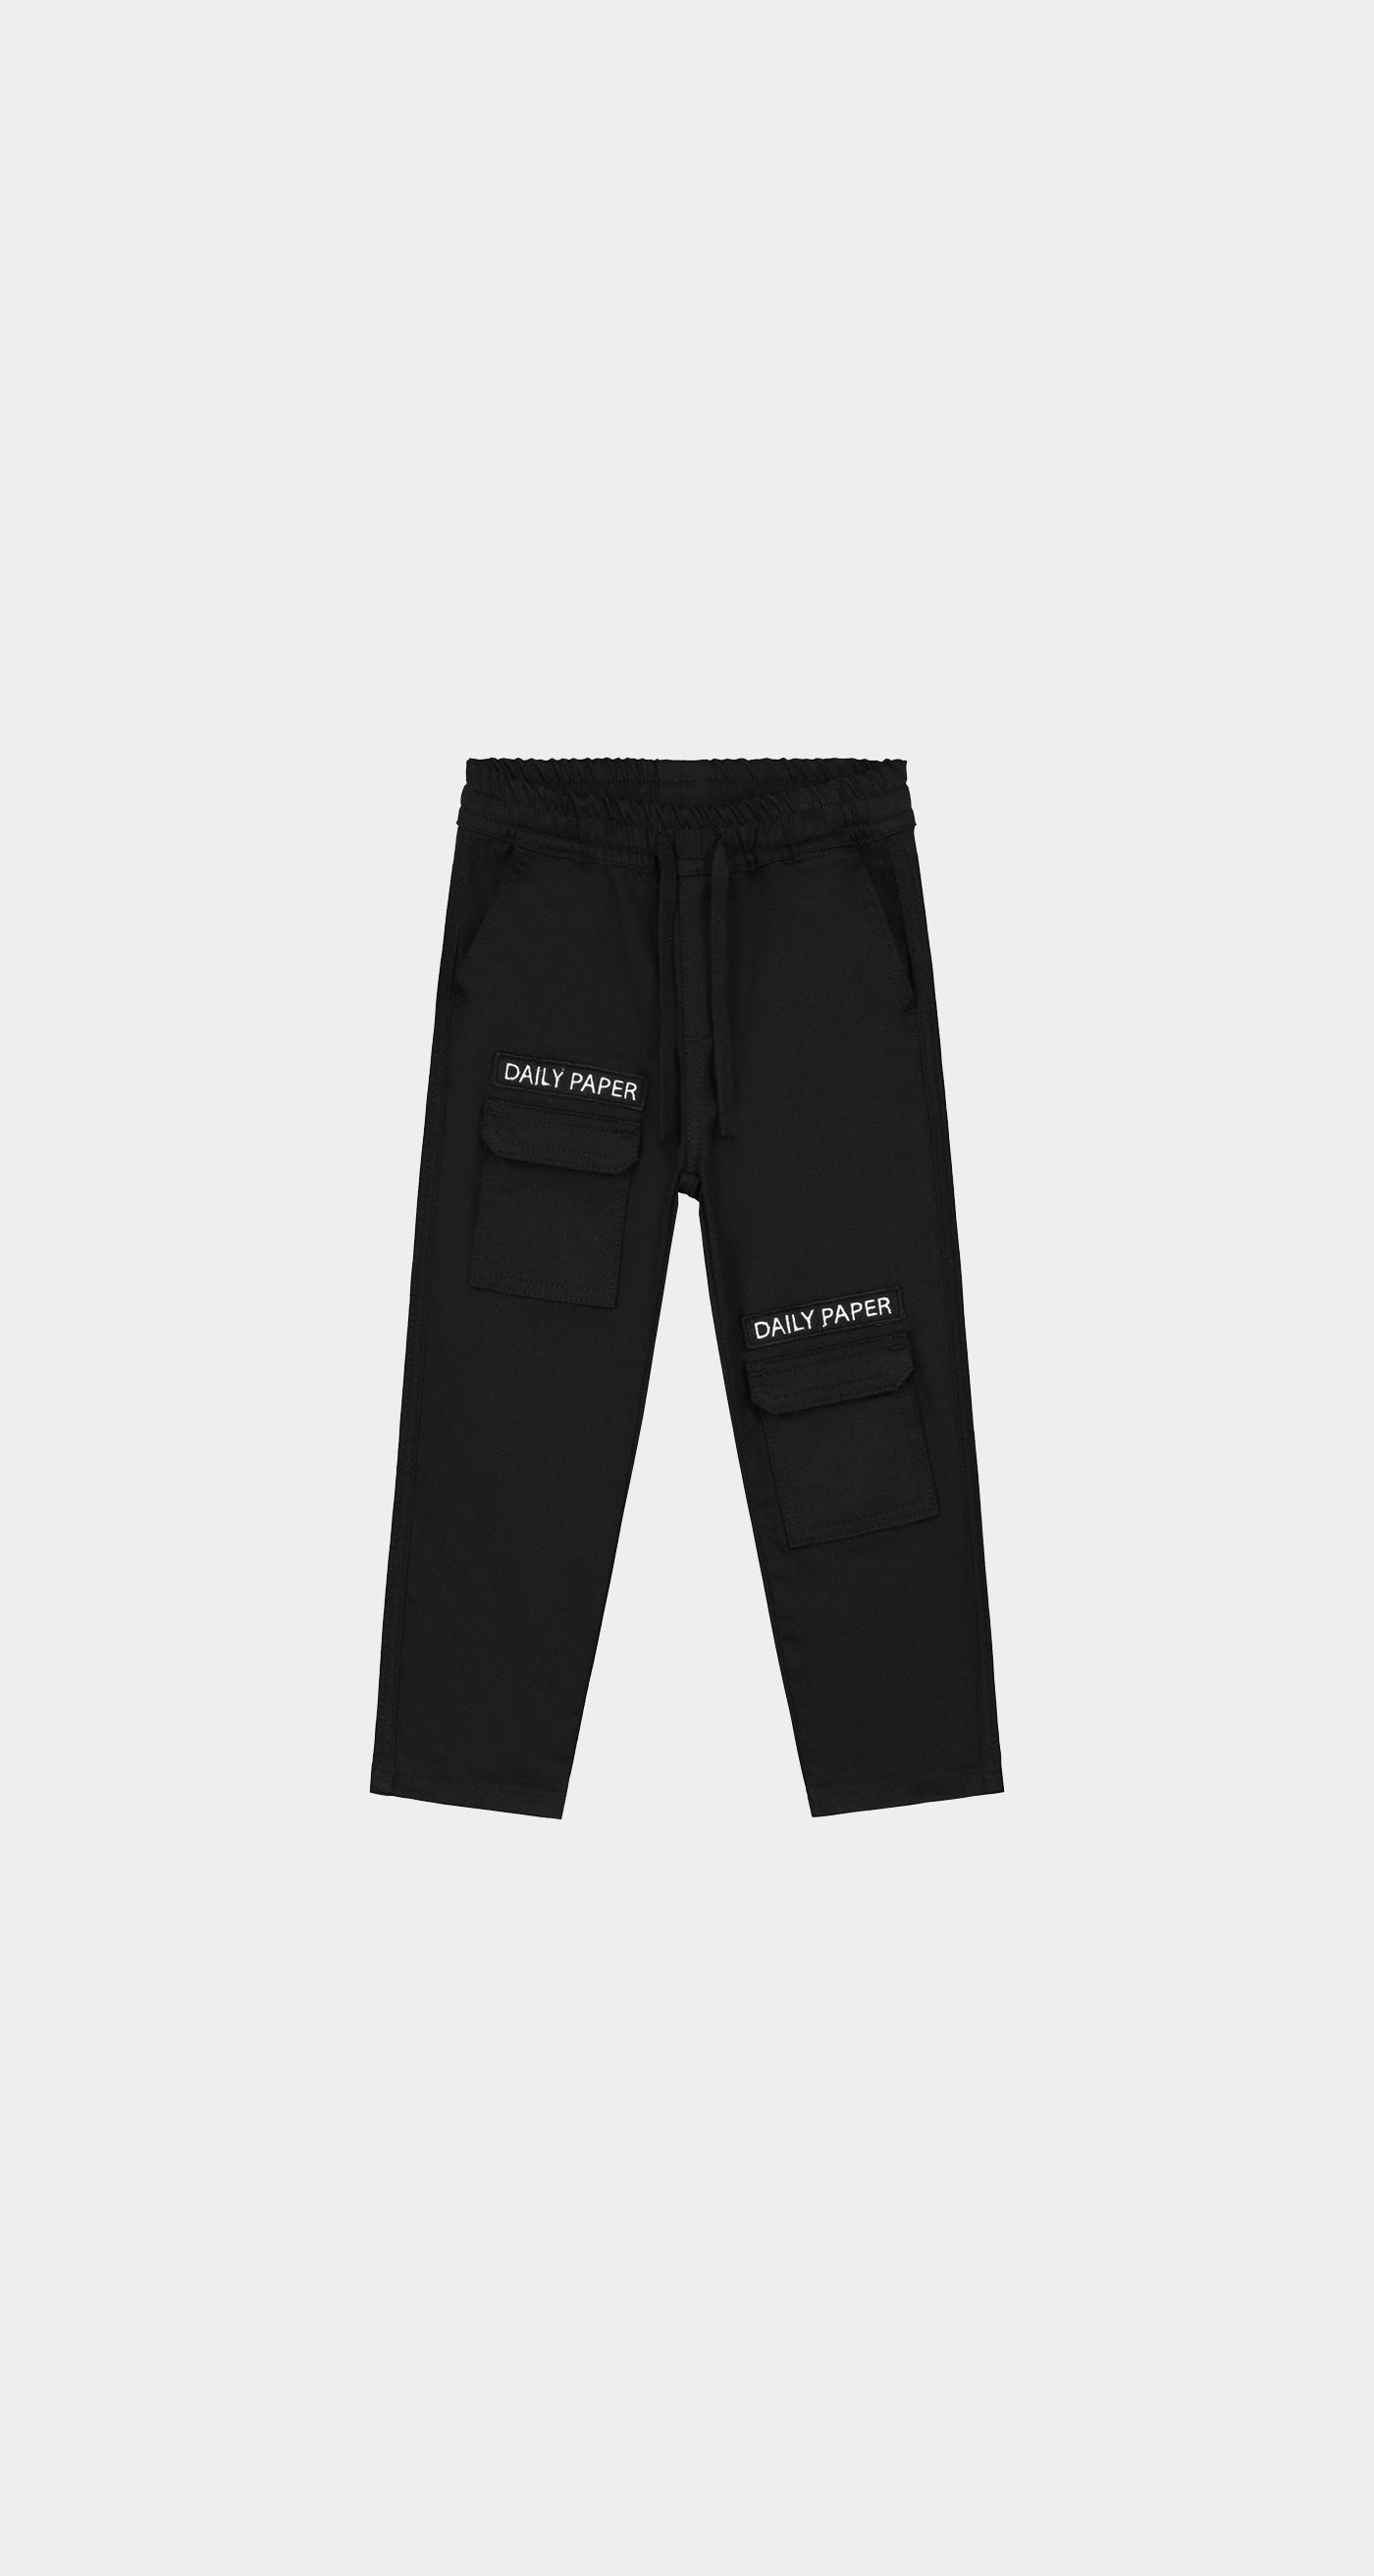 Daily Paper - Black Kids Cargo Pants NEW - Front